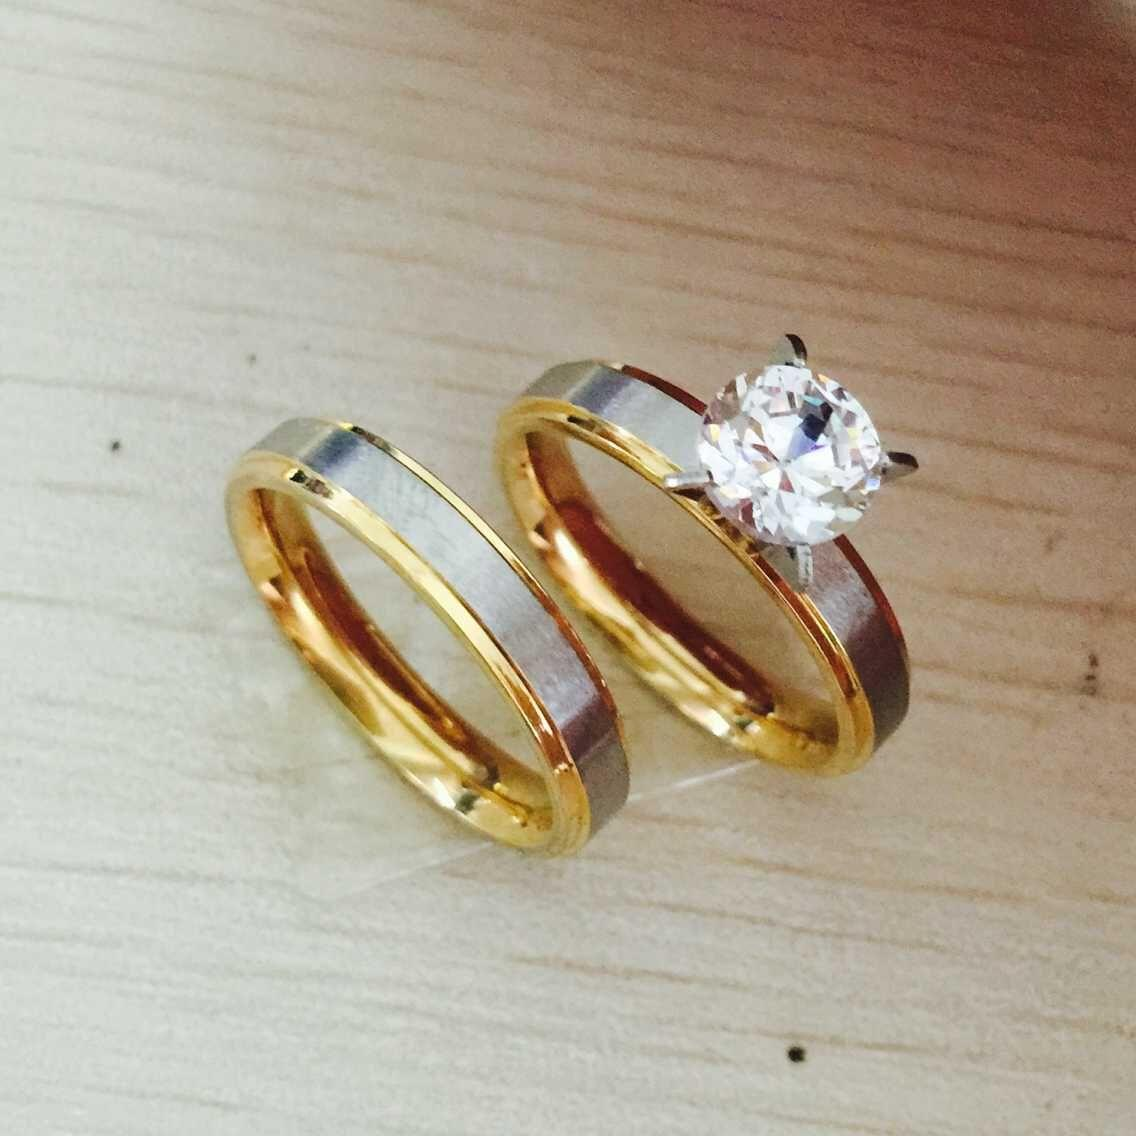 Best 4mm Titanium Steel Cz Diamond Korean Couple Rings Set For Men Women Engagement Lovers His And Hers Promise2 Tone Gold Silver Under 16